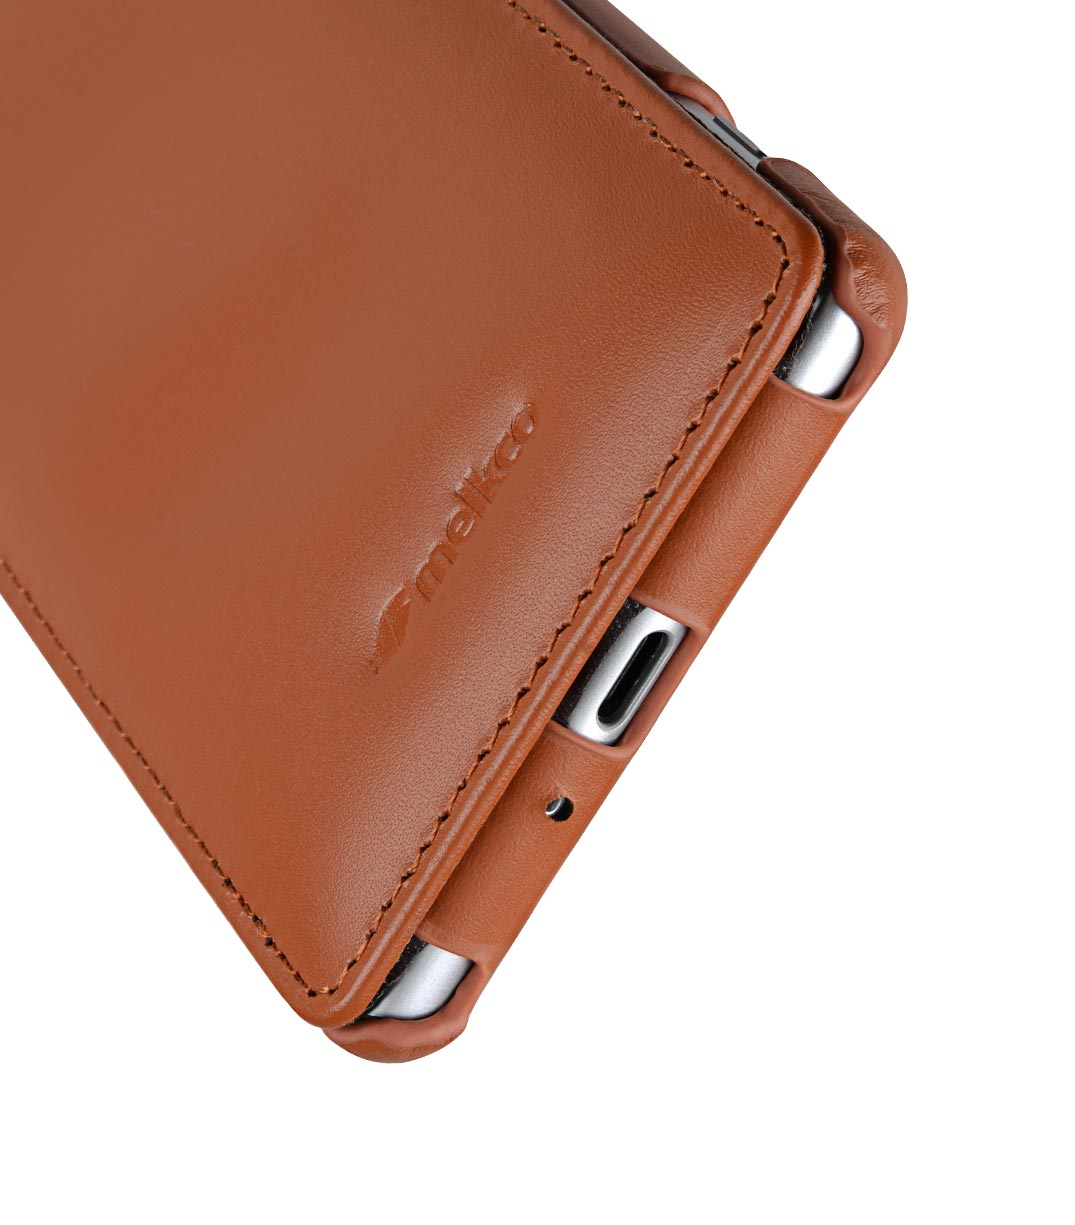 Melkco Premium Leather Case for Sony Xperia XZ2 - Jacka Type (Brown CH)